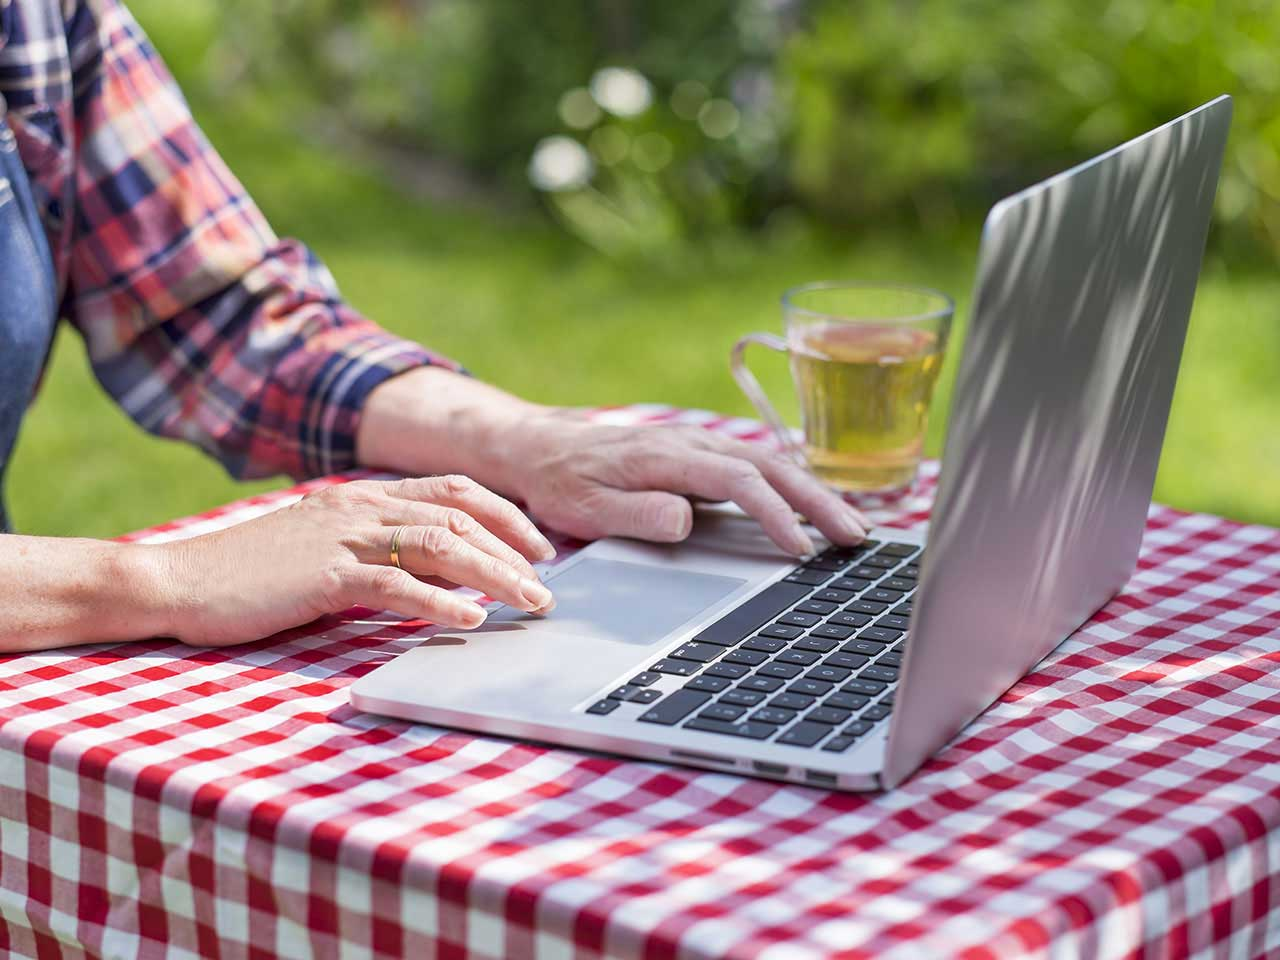 Mature lady using laptop in the garden